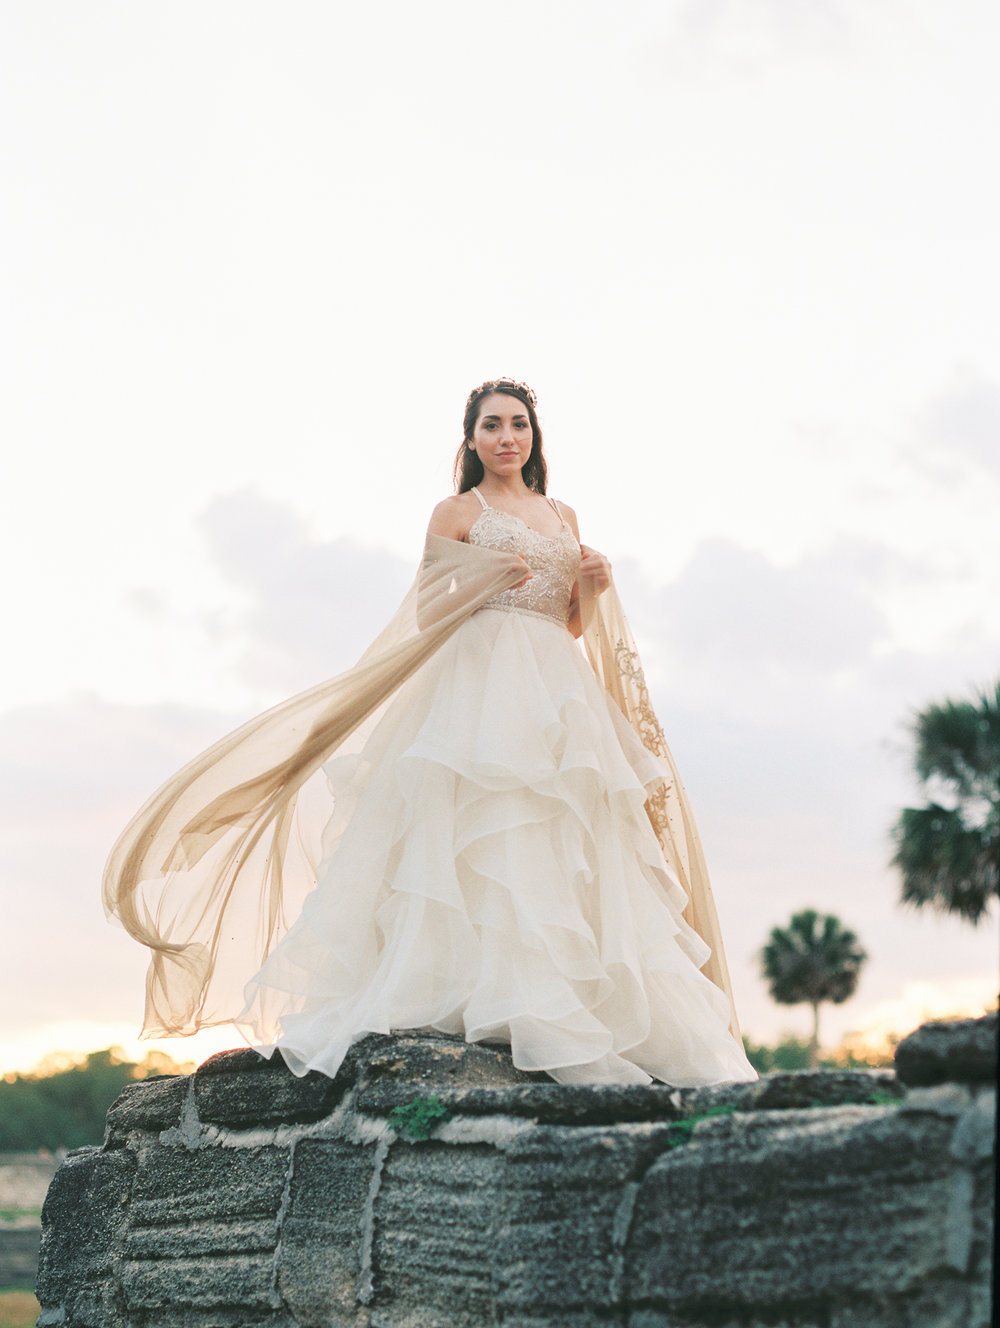 St. augustine, castillo de san marcos styled wedding bridal photo, wedding dress sunset